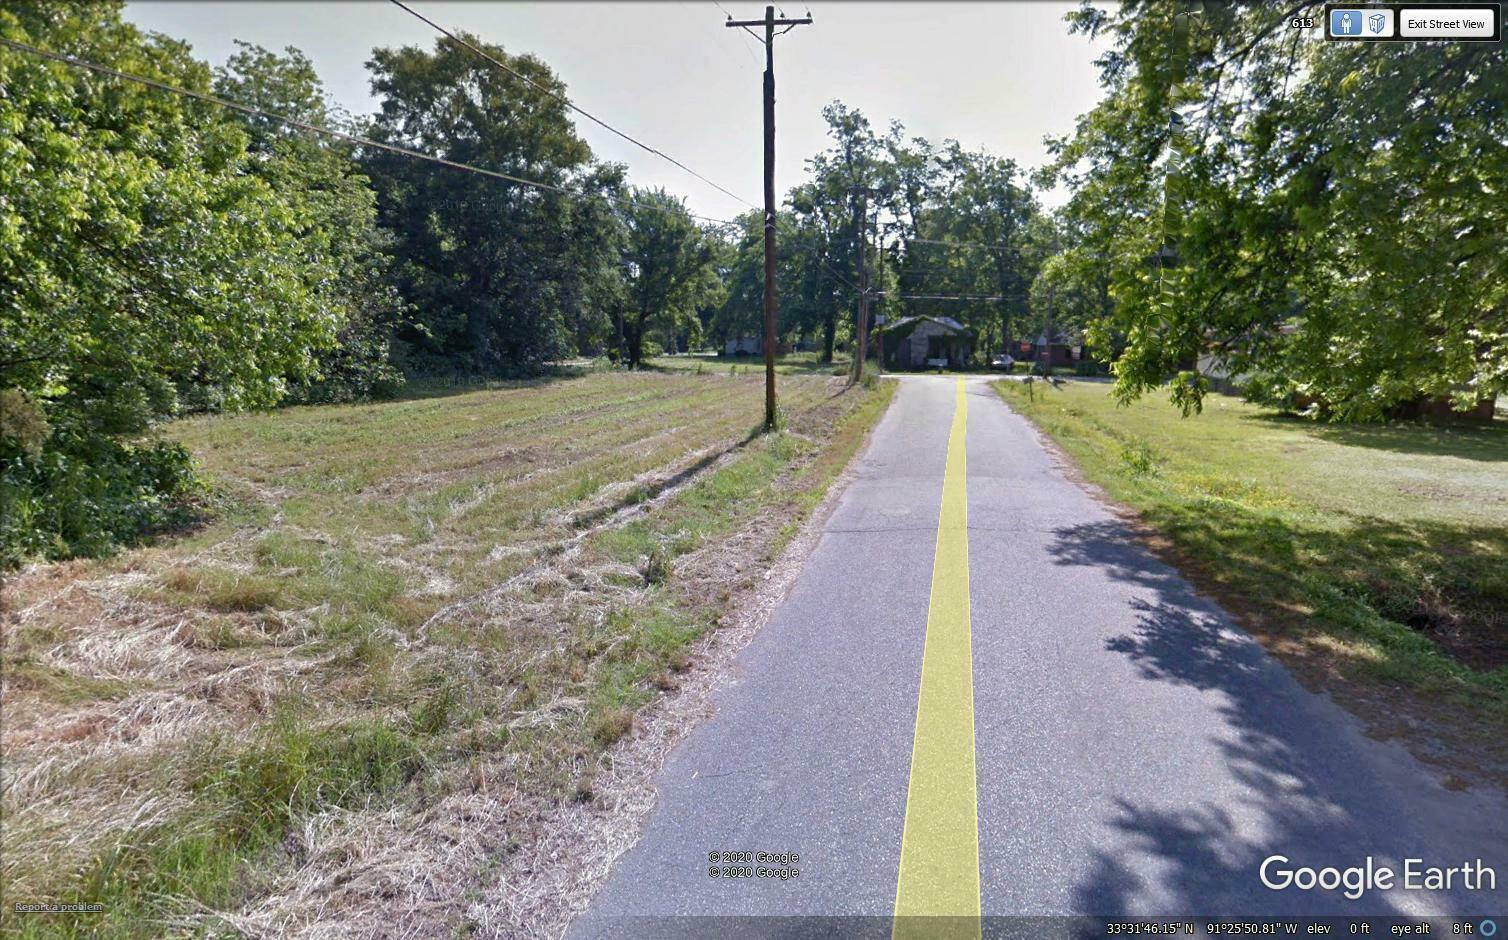 FOR SALE- ARKANSAS LOT WITH GAS, POWER, WATER AND SEWER AT THE LOT GREAT BUY  - $549.00